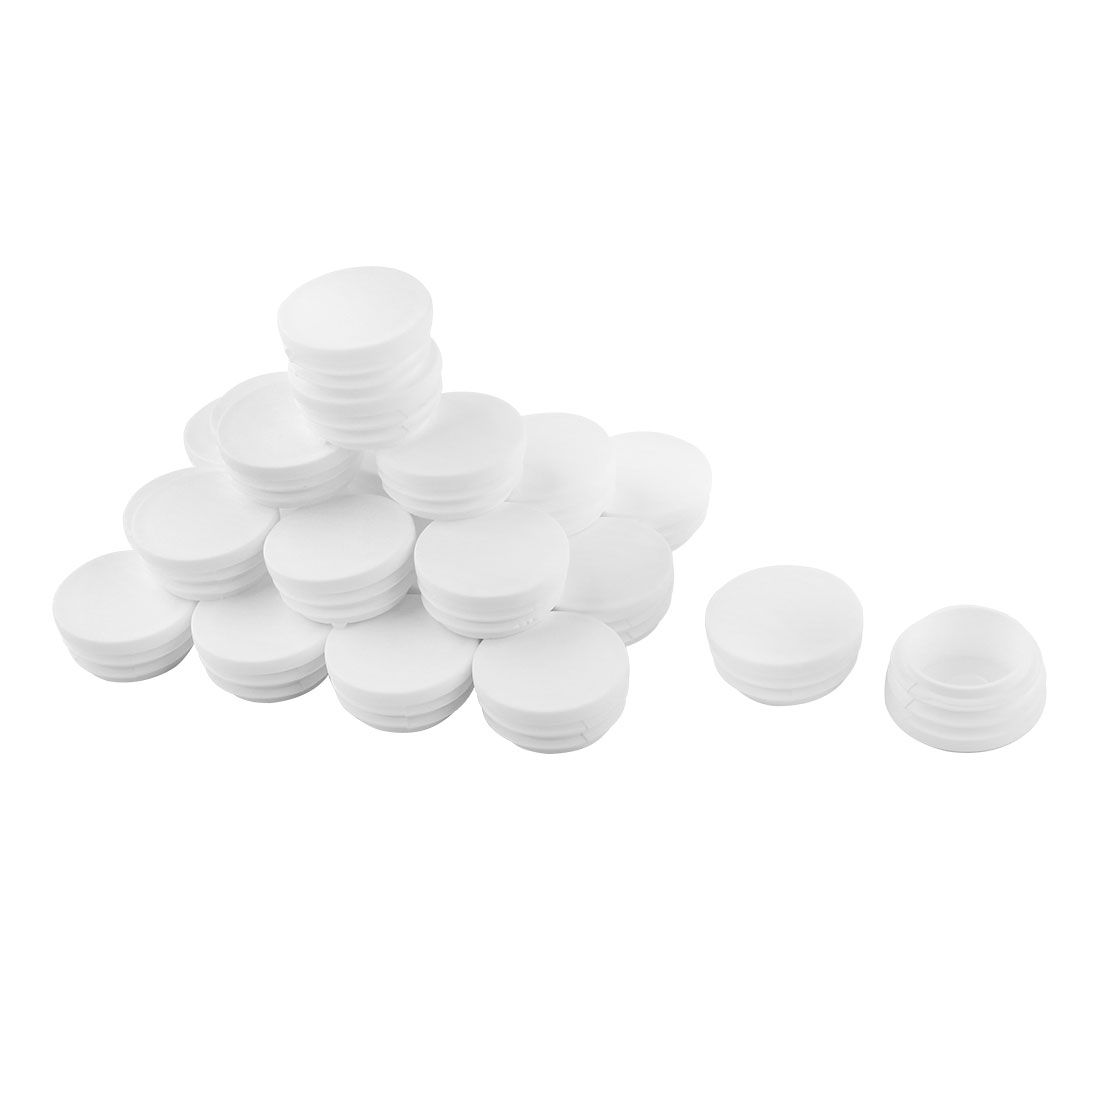 "Chair Table 1.5"" Round Plastic Blanking End Cap Tubing Tube Inserts 24 Pcs"